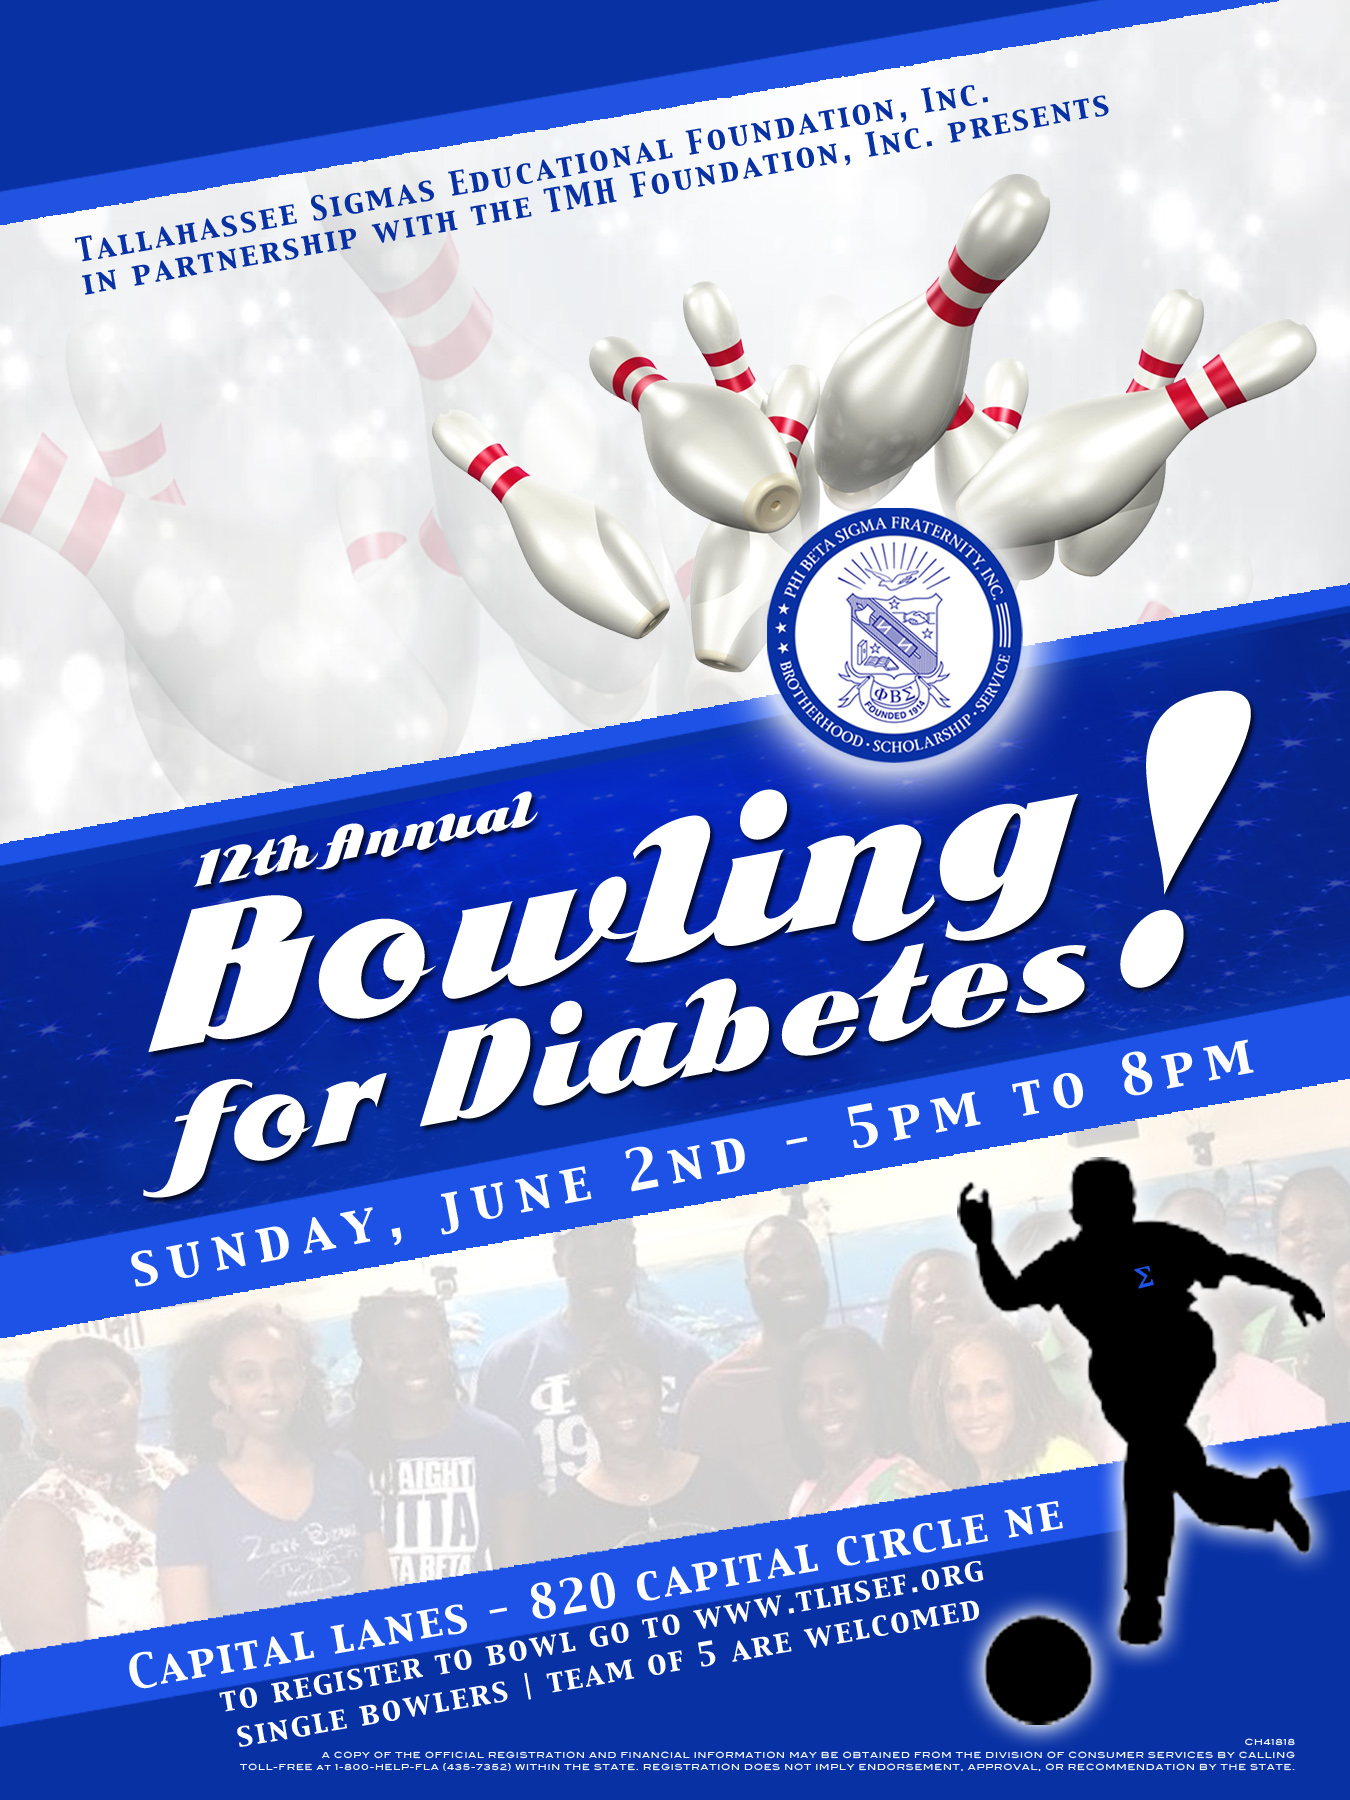 2019 Bowling for Diabetes Flyer